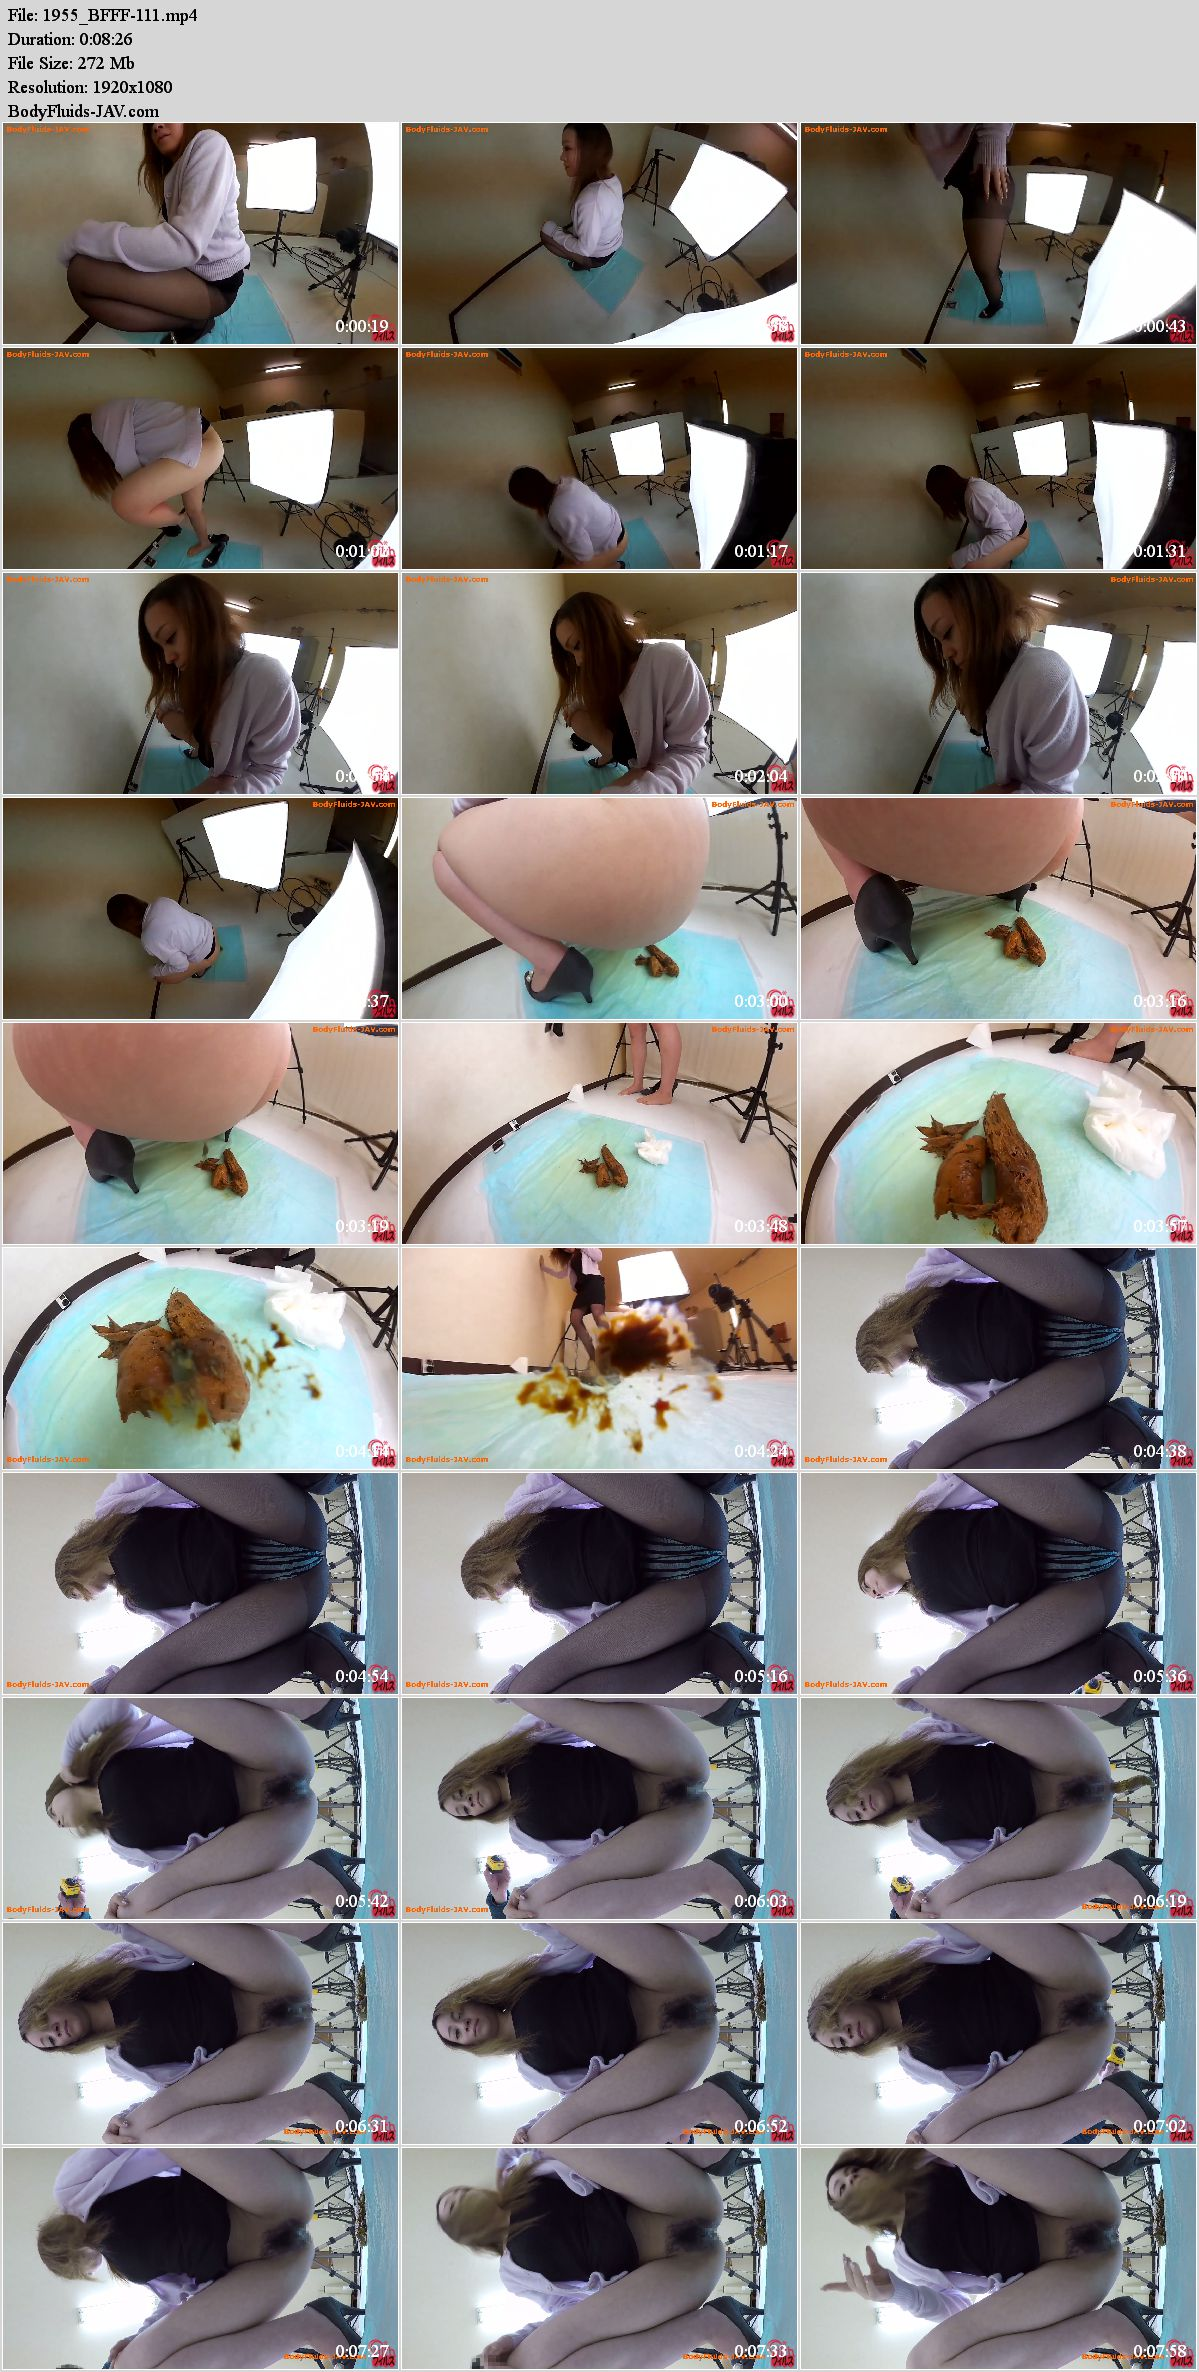 BFFF-111 Gaping pussy peeing and pooping dirty ass. (HD 1080p)